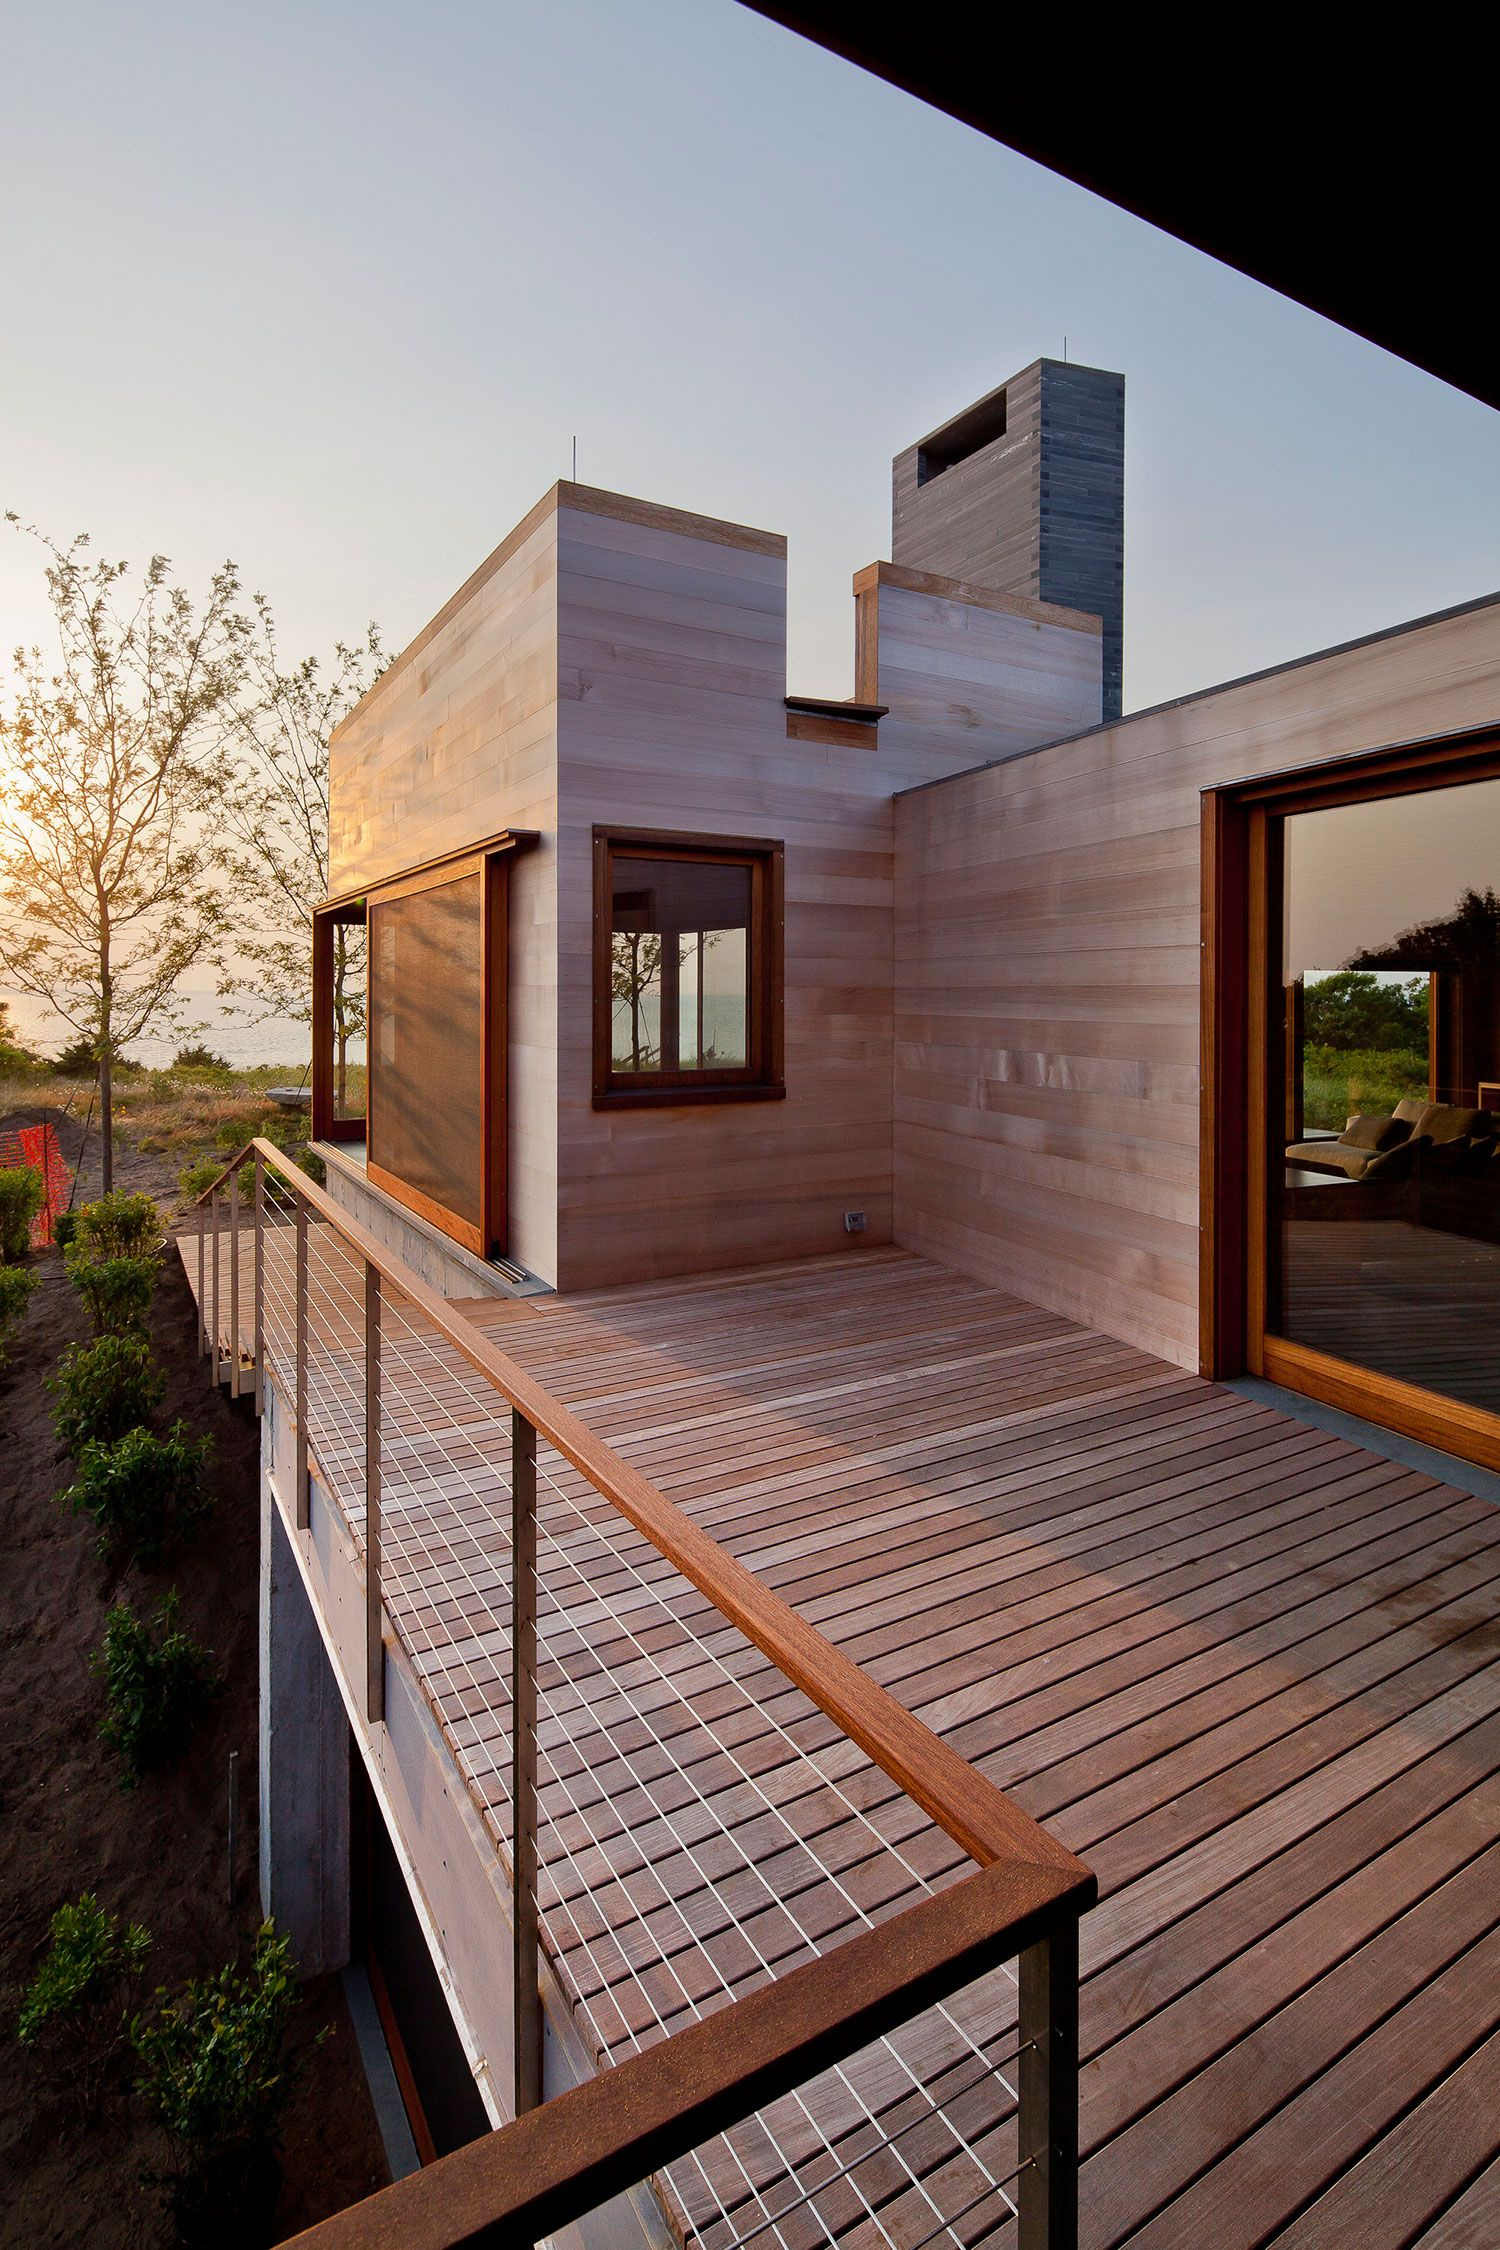 Poteau Terrasse Bois Naturally Accommodating Architecture Poteau En Bois